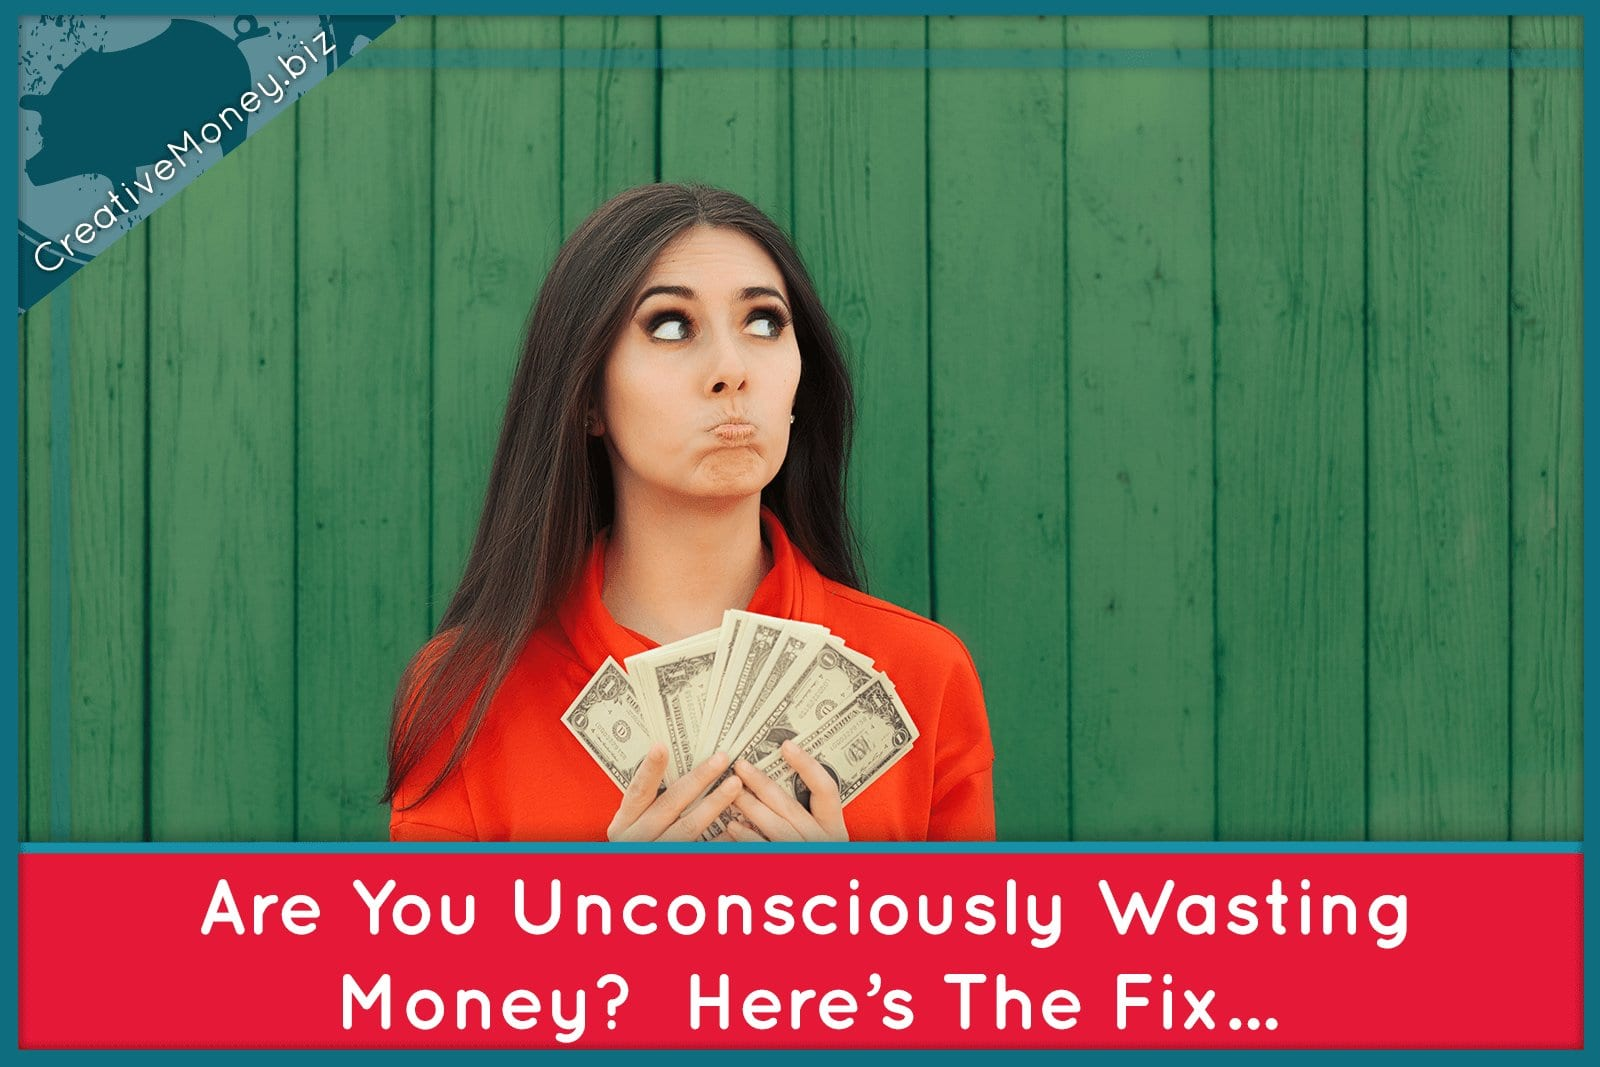 Are you unconsciously wasting money